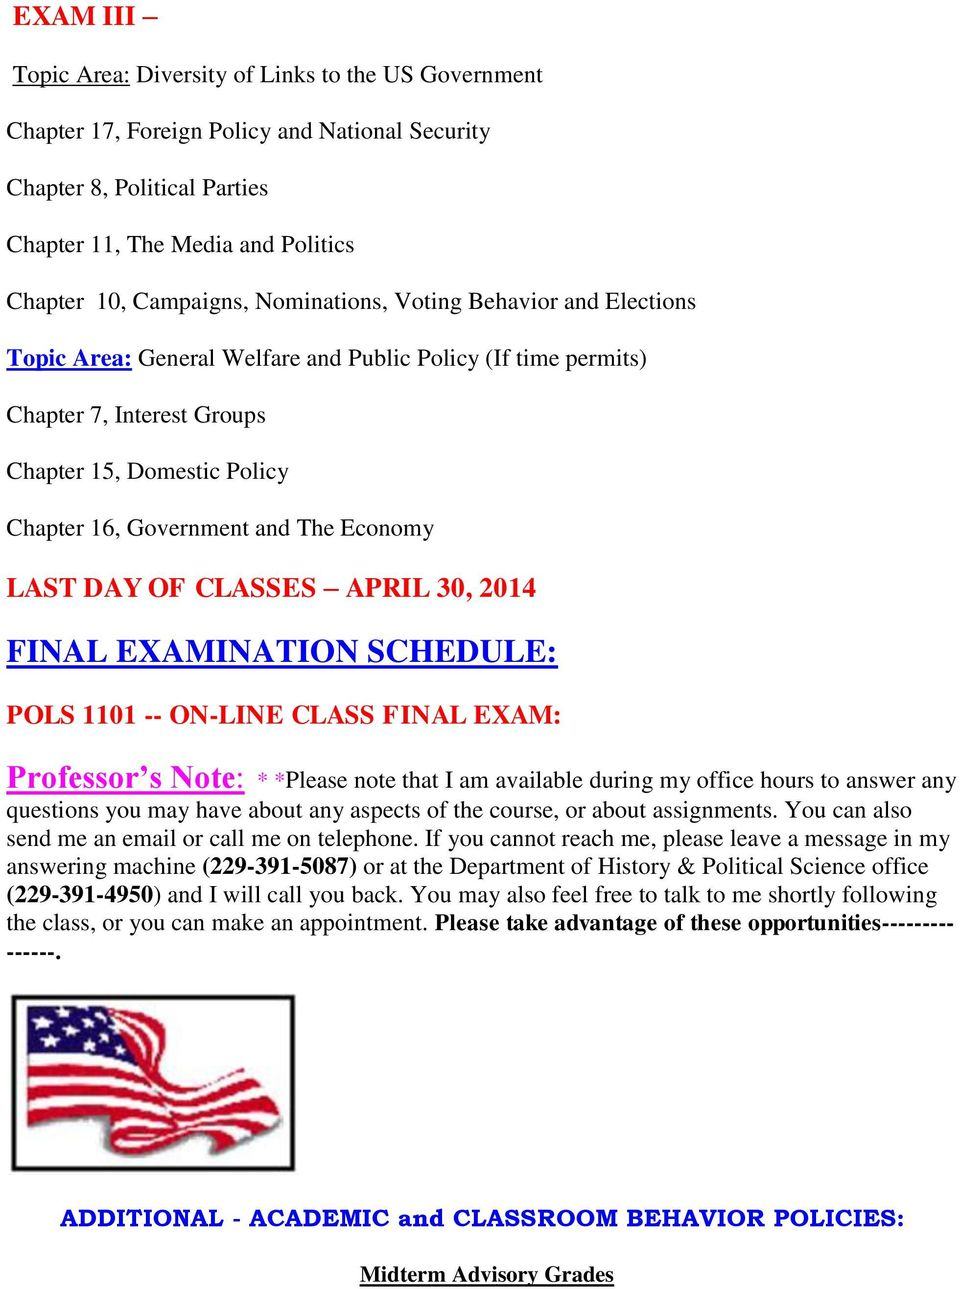 Economy LAST DAY OF CLASSES APRIL 30, 2014 FINAL EXAMINATION SCHEDULE: POLS 1101 -- ON-LINE CLASS FINAL EXAM: Professor s Note: * *Please note that I am available during my office hours to answer any